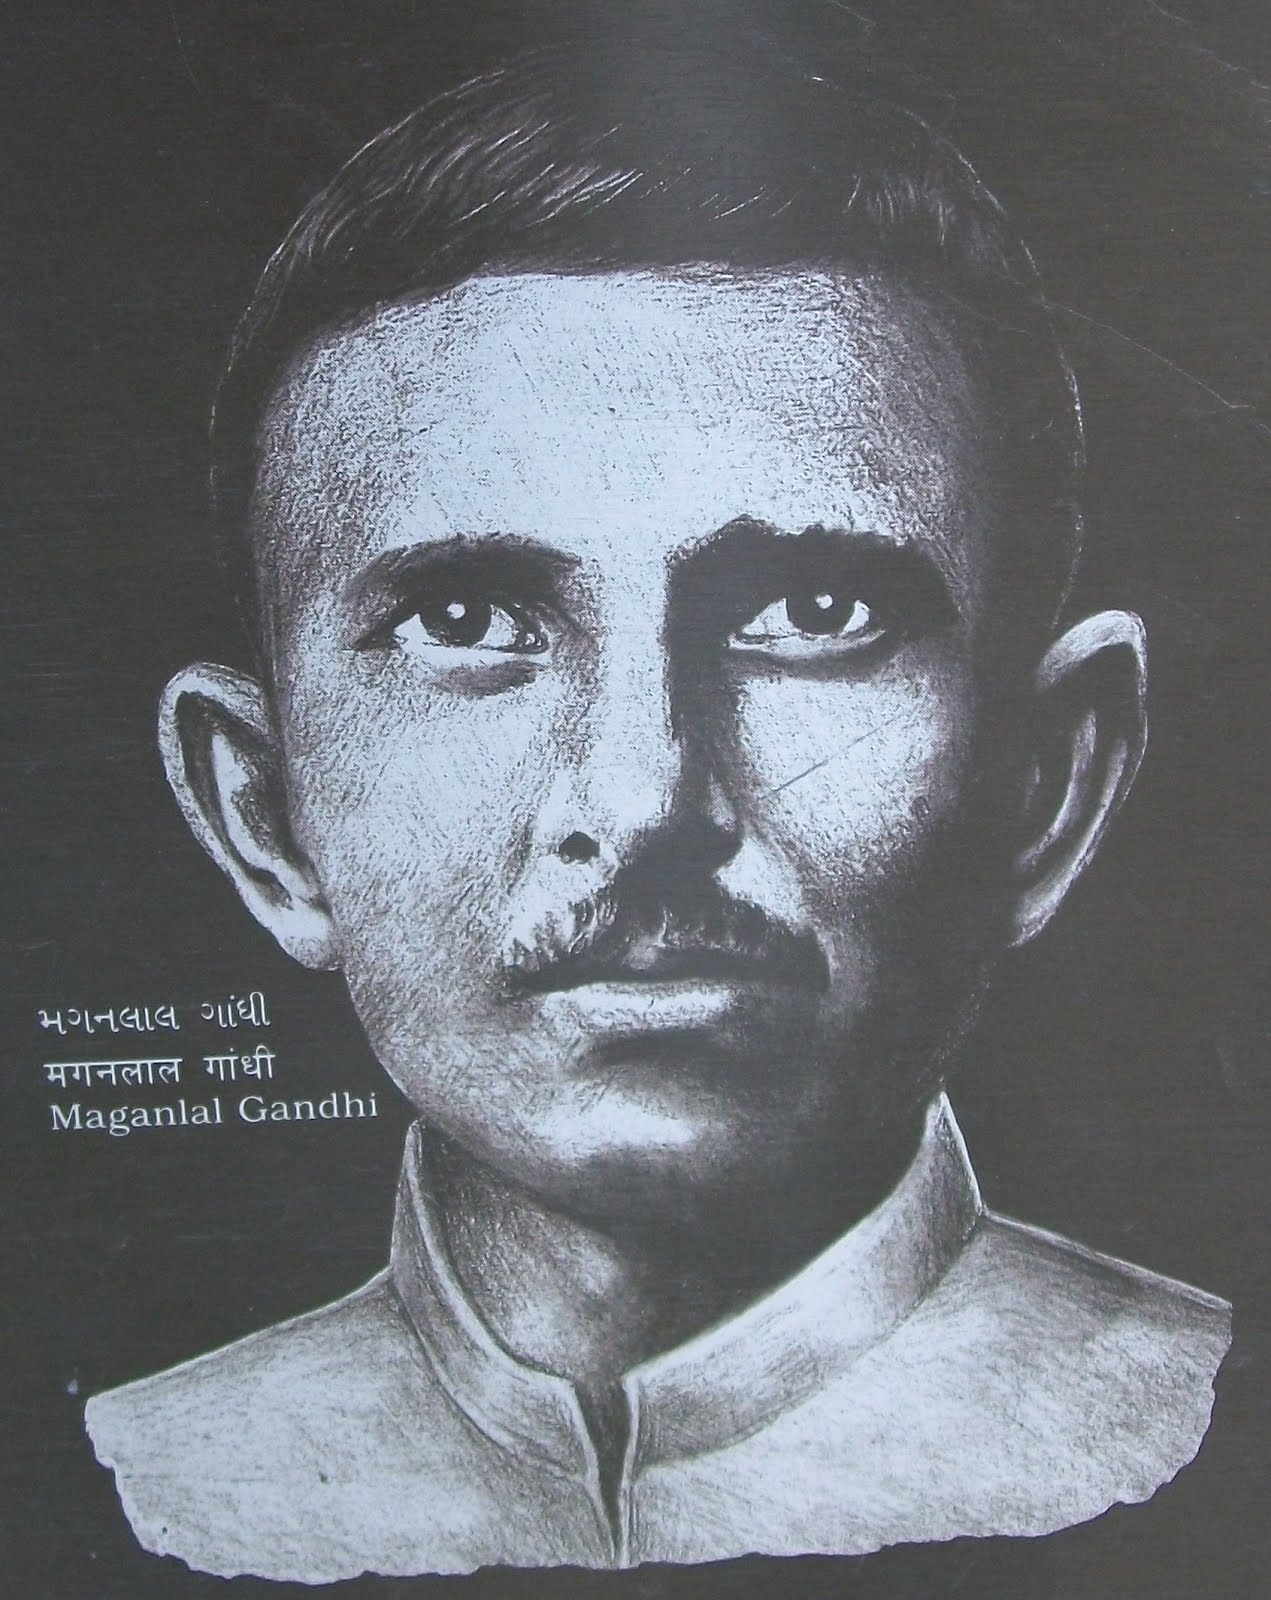 """mahatma gandhi an innovation Gandhi, an exemplary leader mahatma gandhi, who is also rightfully honored as the """"father of the nation"""" was the key leader in the independence struggle for india."""